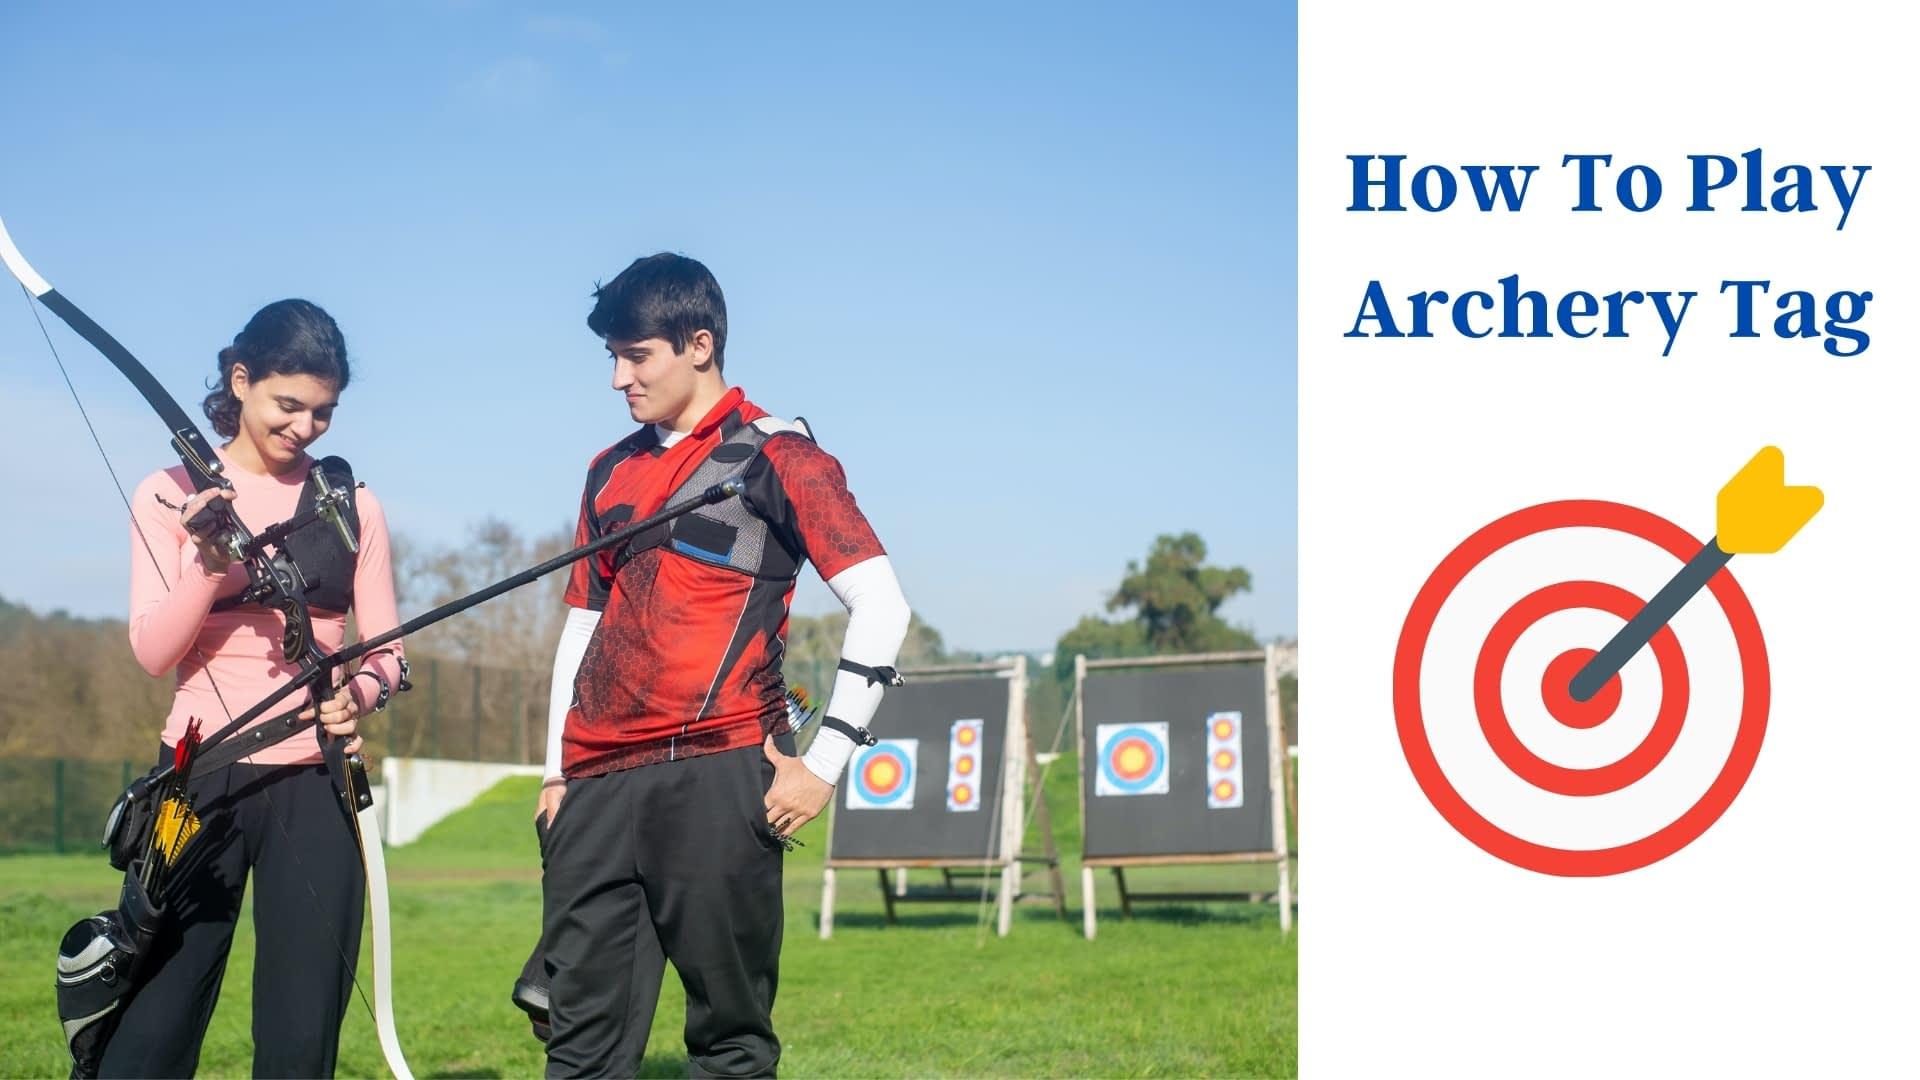 How To Play Archery Tag